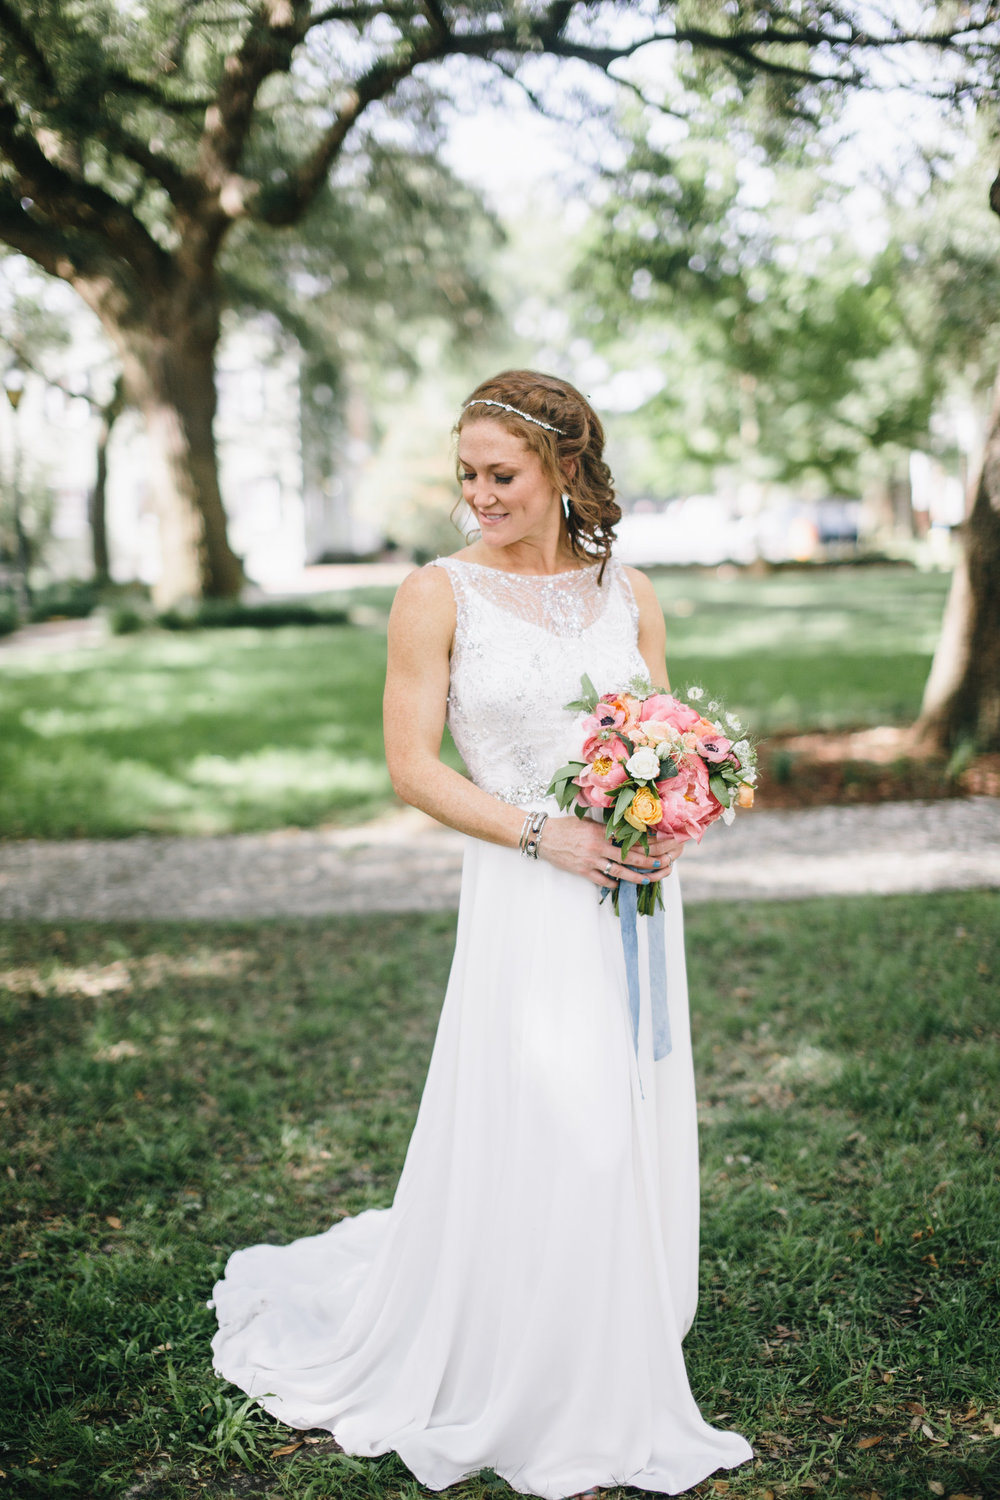 mackensey-alexander-photography-ivory-and-beau-bridal-boutique-from-this-day-forward-wedding-planning-sarah-seven-gwen-savannah-bridal-boutique-savannah-wedding-dresses-savannah-bridal-boutique-savannah-wedding-planner-savannah-weddings-21.jpg